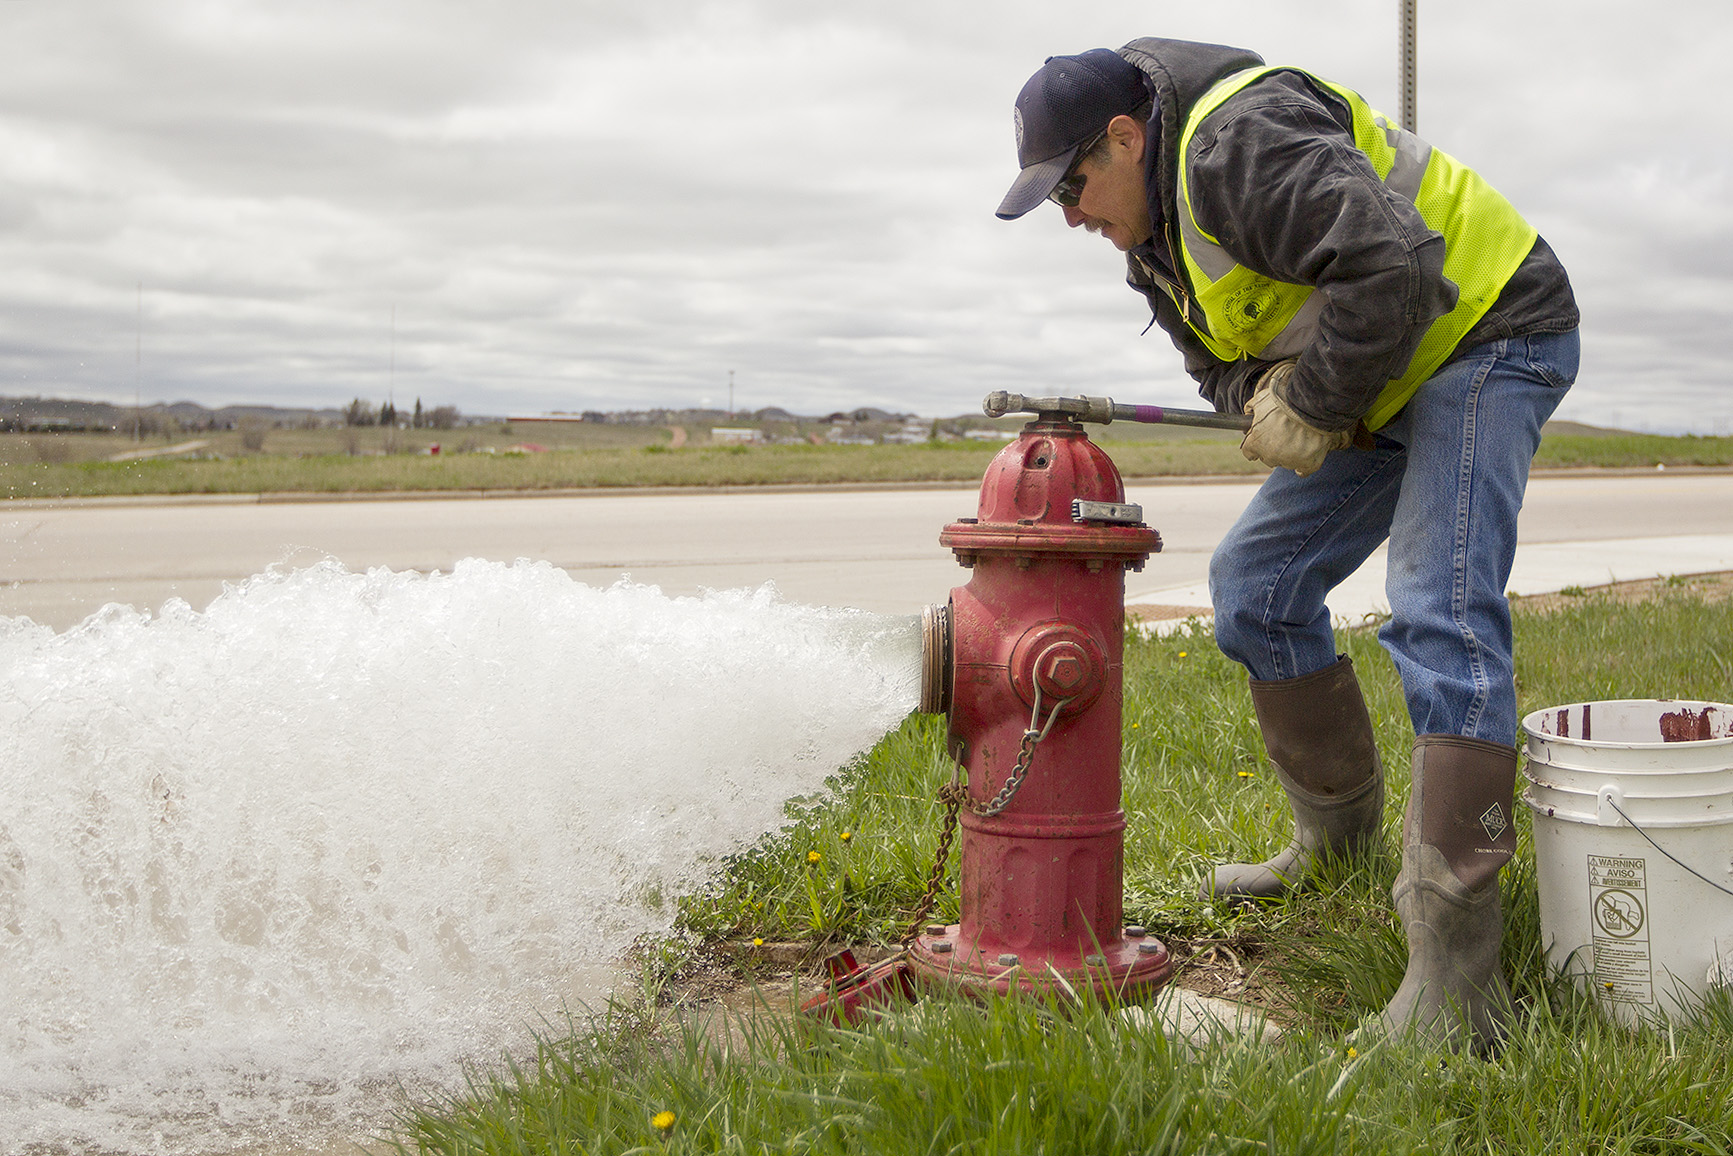 Scott Sorenson, foreman for the Gillette water division, opens a fire hydrant on Gurley Avenue Monday afternoon as the city crews begin flushing the city's water lines. The annual flushing of the water lines clears any sediment and debris that has settled in the pipes, and allows crews to check on water pressure and make sure the hydrants are working properly.